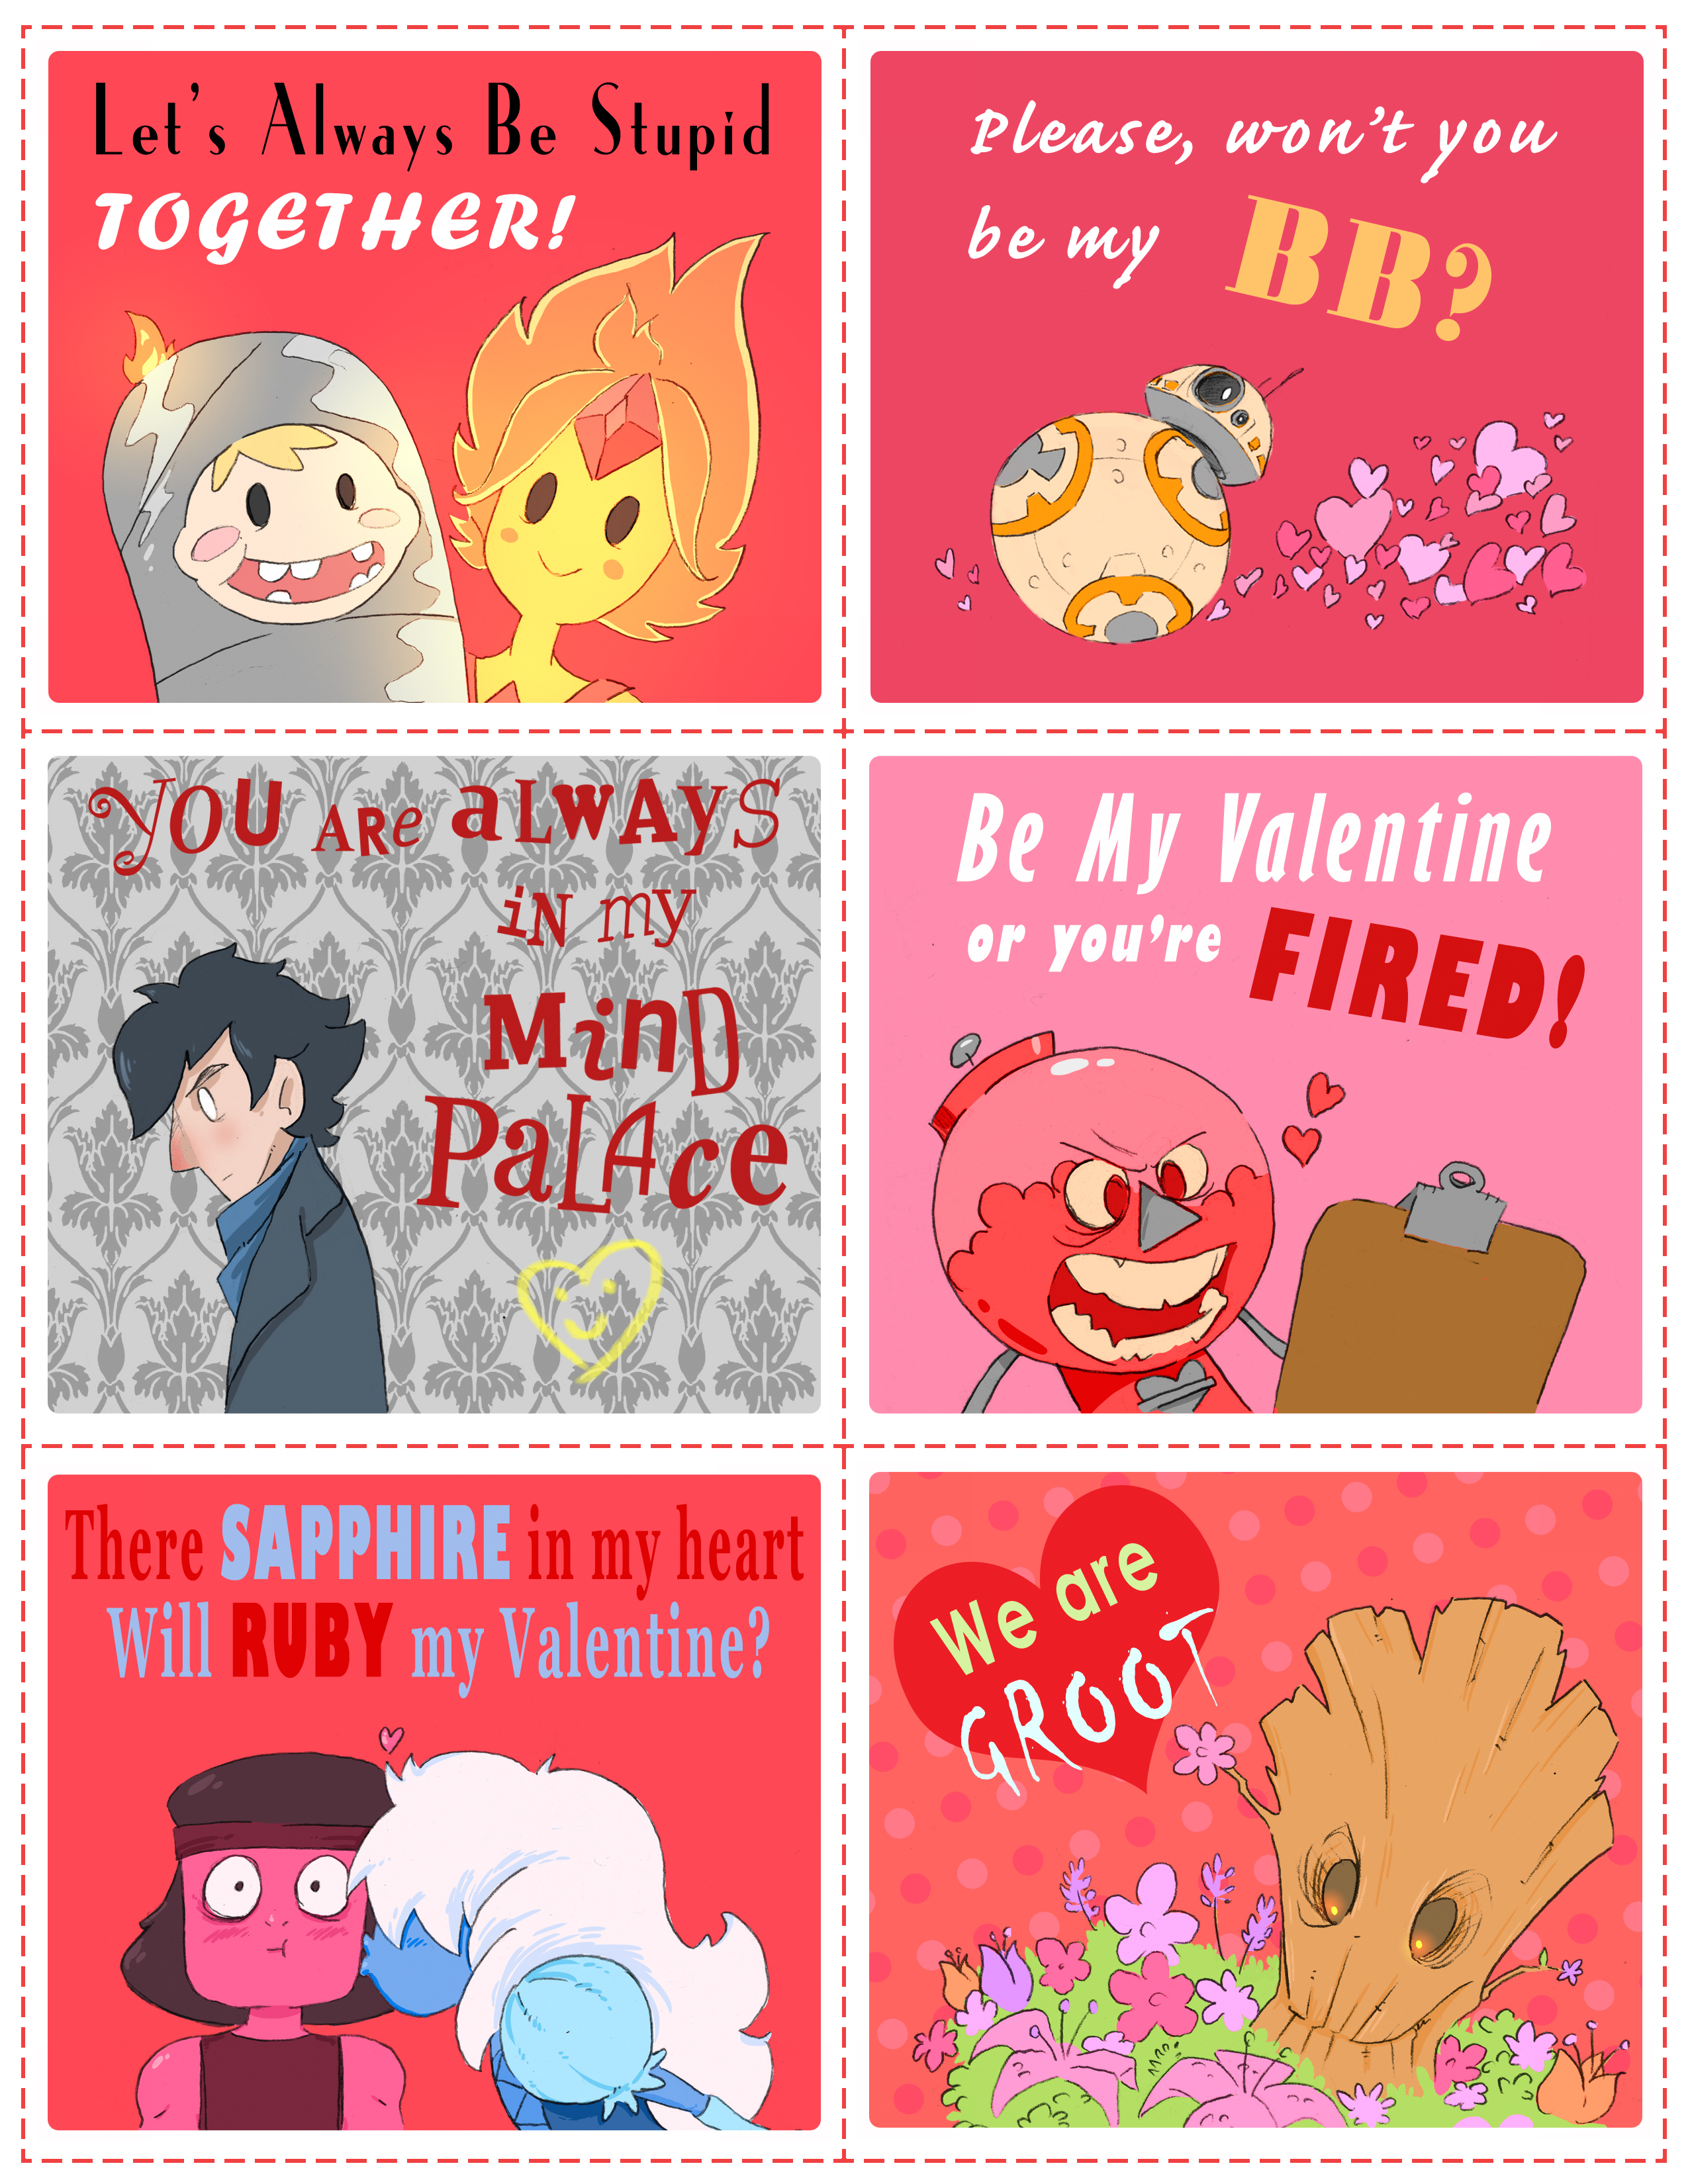 geeky valentines cards by natesquatch geeky valentines cards by natesquatch - Geeky Valentines Cards